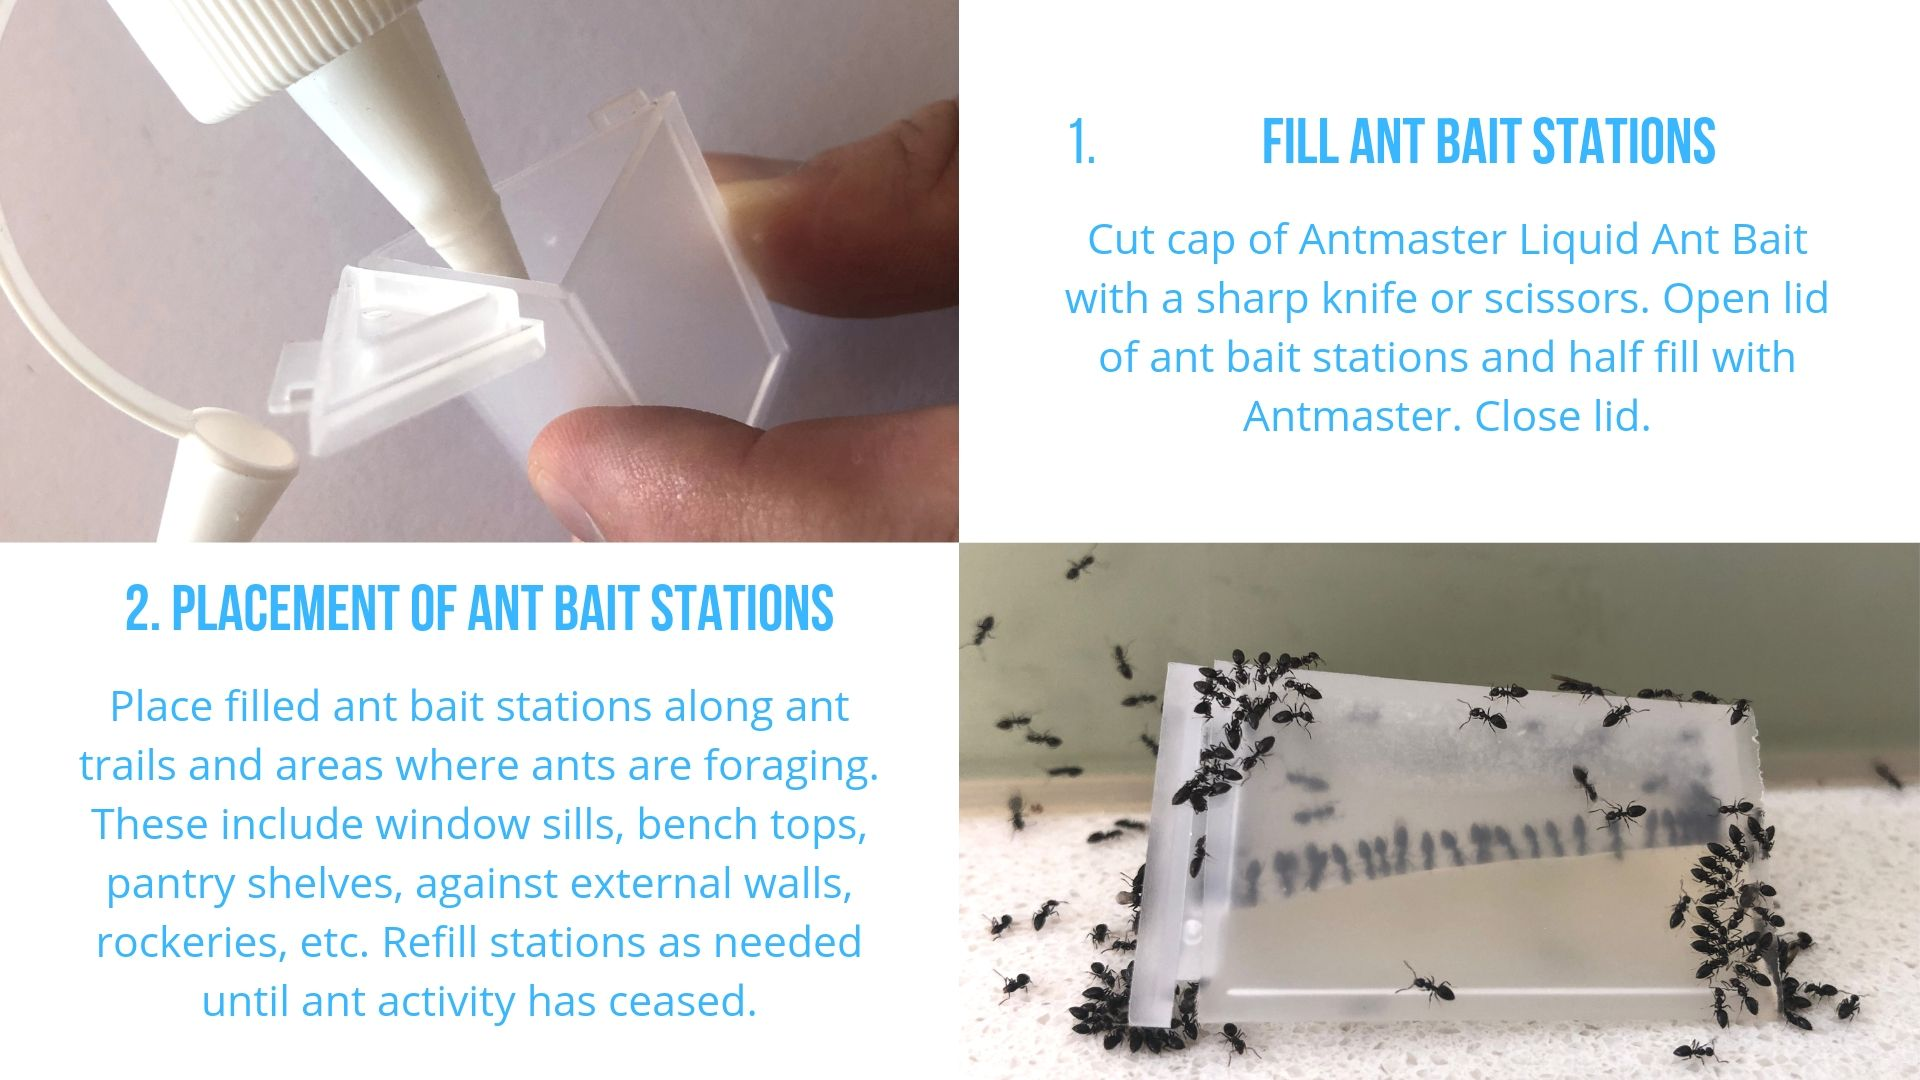 Black Ant Control Kit Instructions